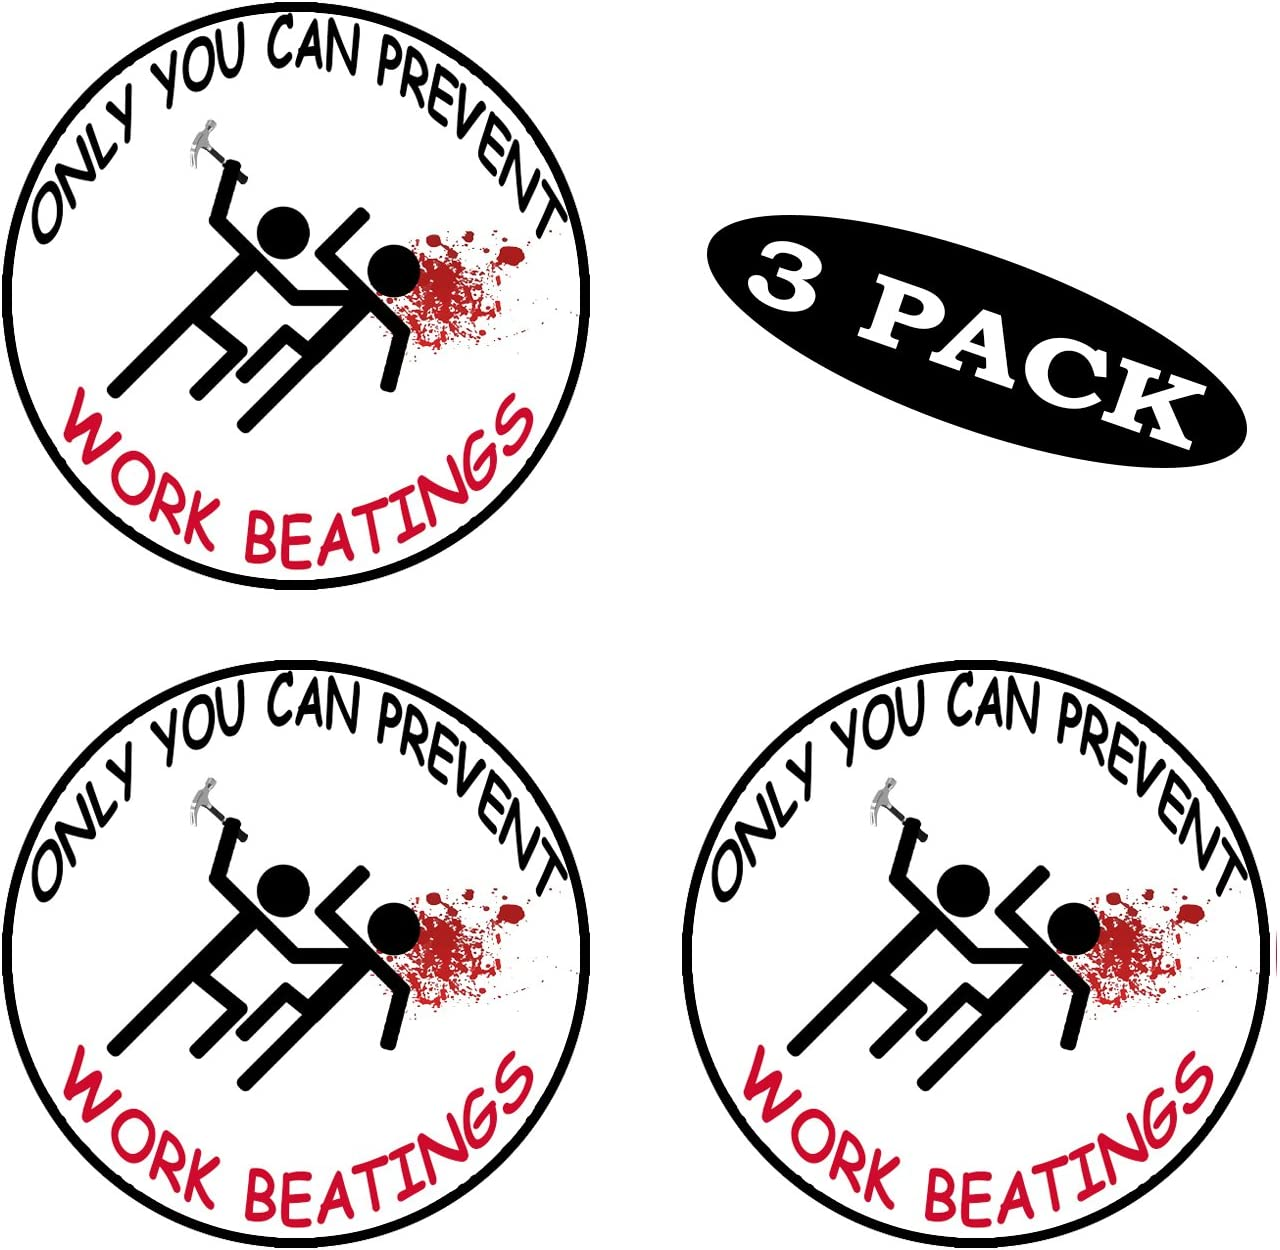 Rogue River Tactical 3 Pack Funny Hard Hat Sticker Only You Can Prevent Workplace Beatings Work Biker Helmet Decals Toolbox 2 Round